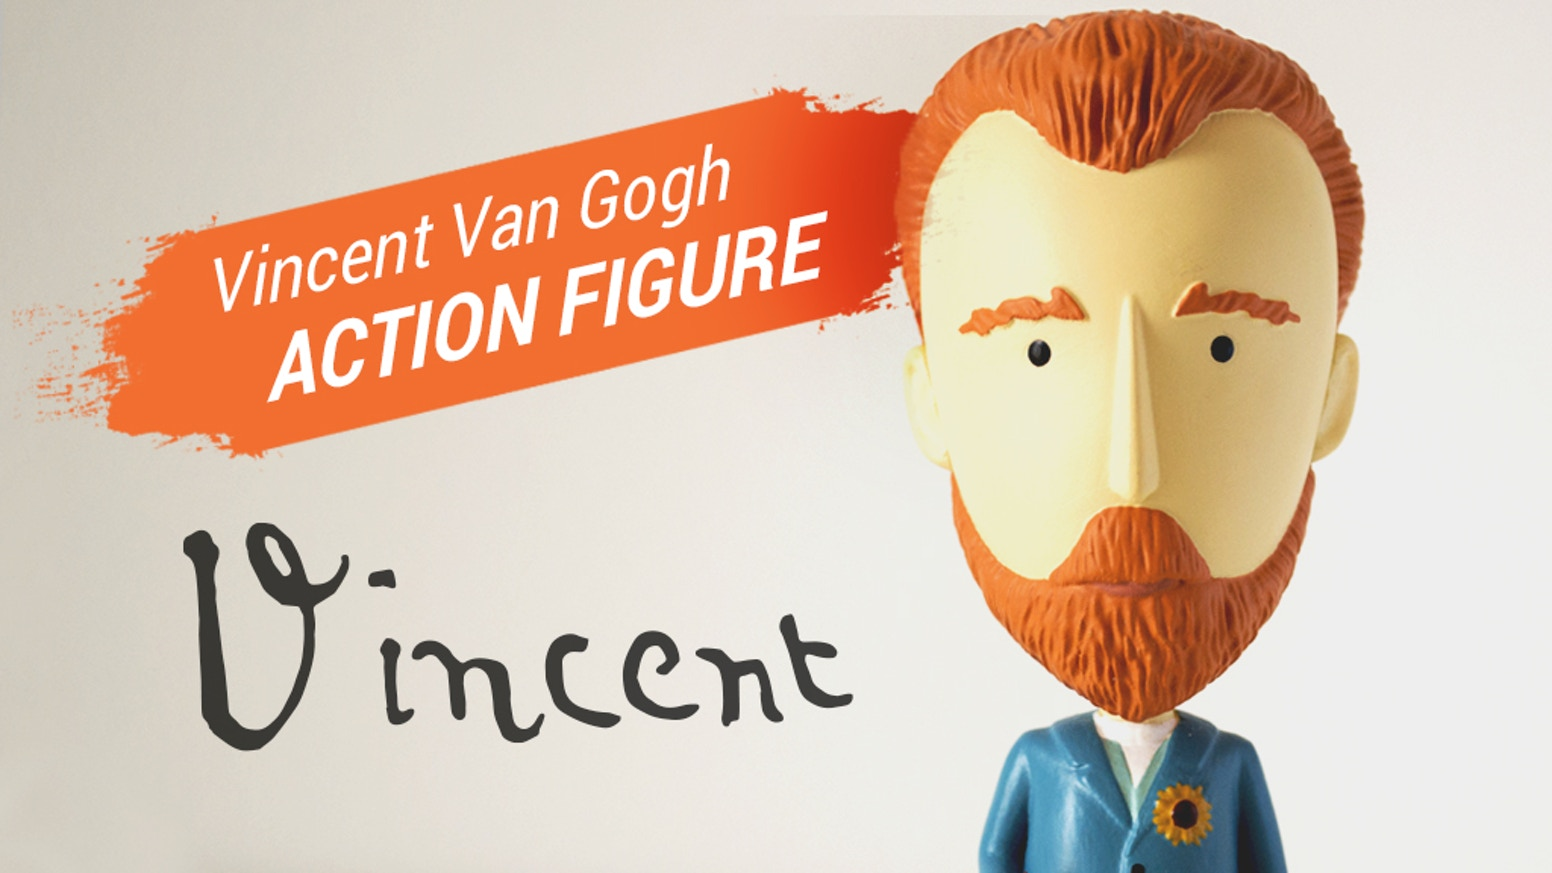 The Vincent van Gogh action figure is happening! Want yours?